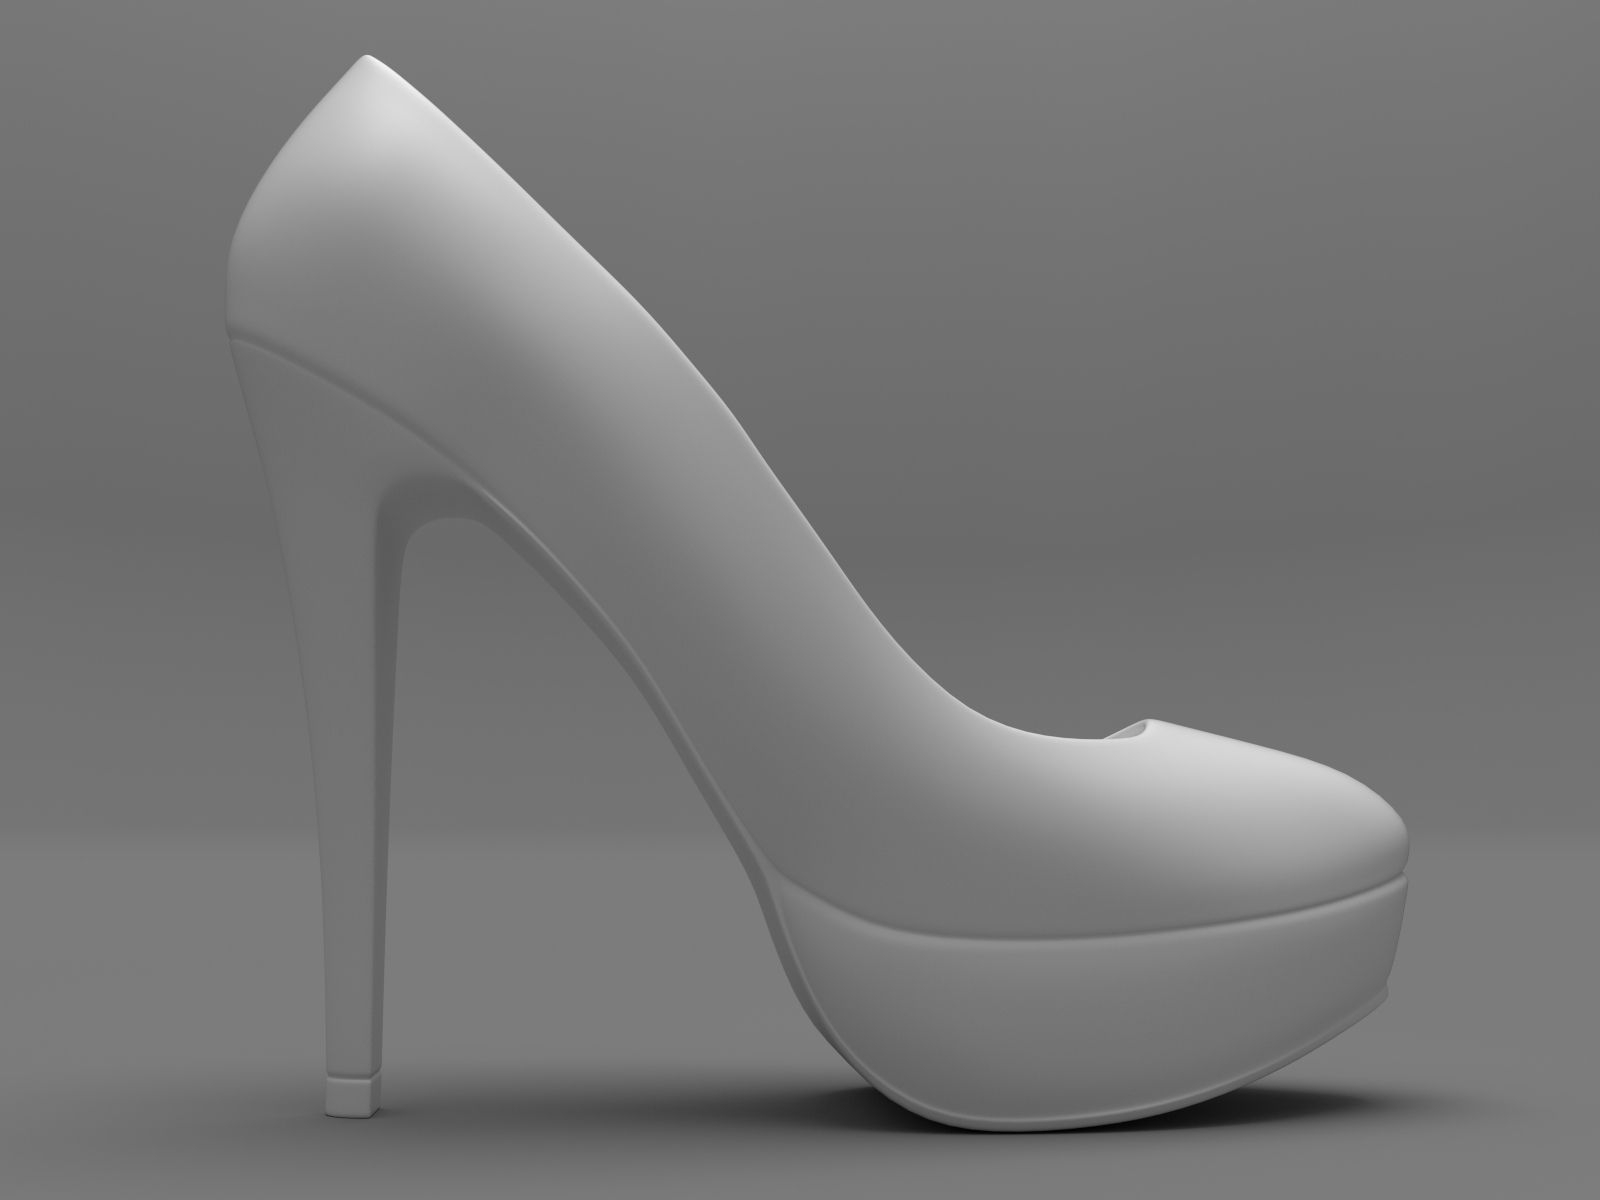 Mini High Heels 3d Model 3d Printable Obj Stl Cgtrader Com